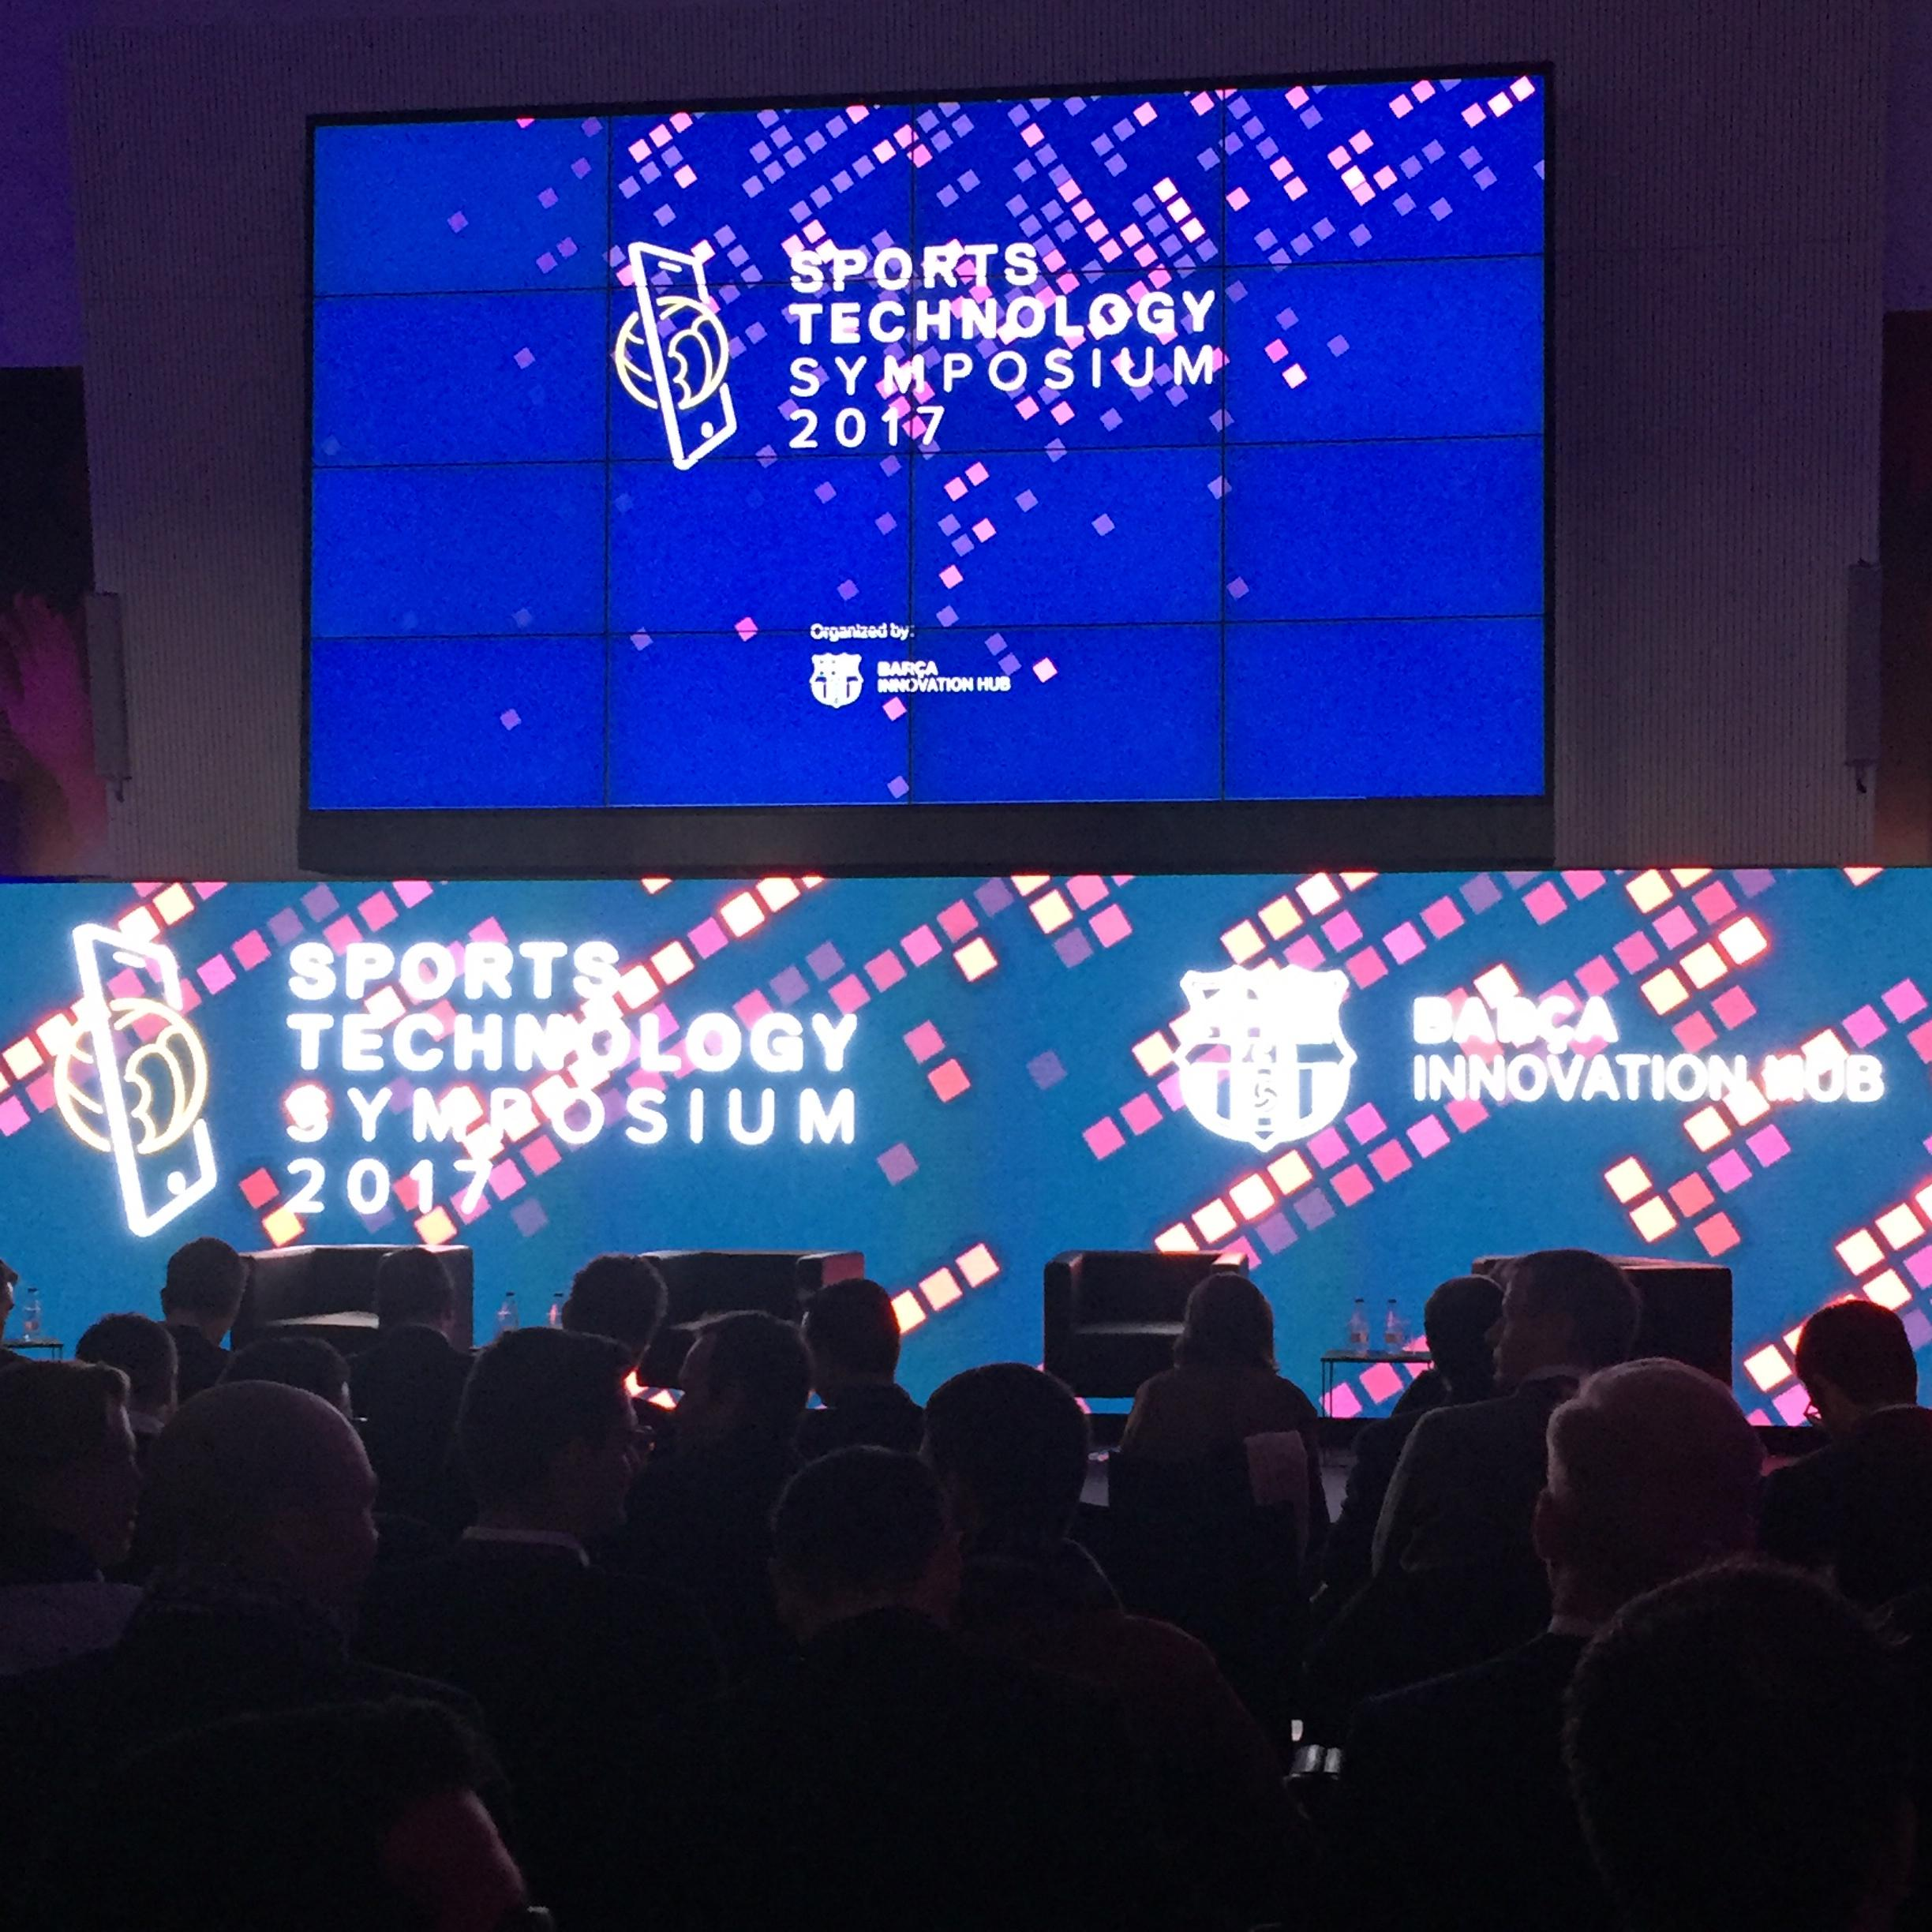 Sports Technology Symposium 2017